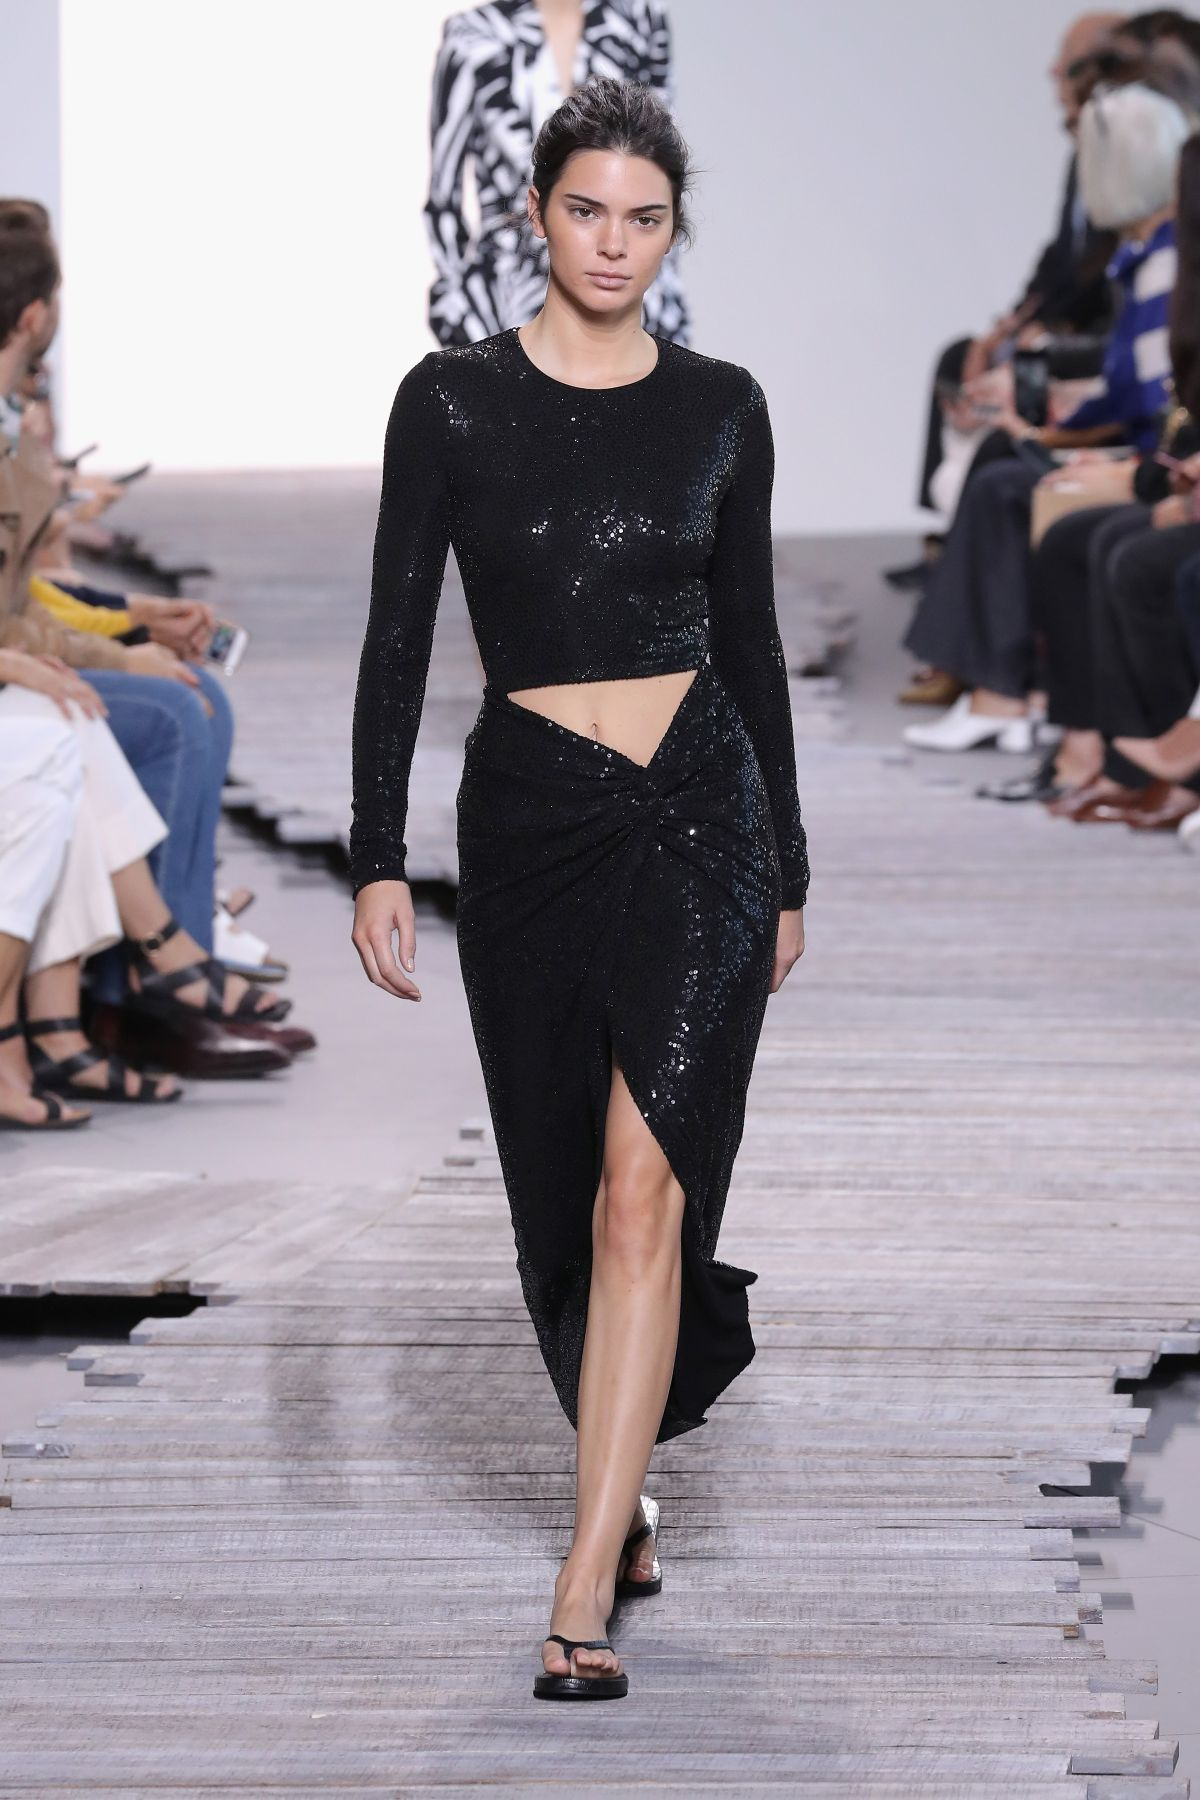 Kendall Jenner Walks The Runway For Michael Kors Fashion